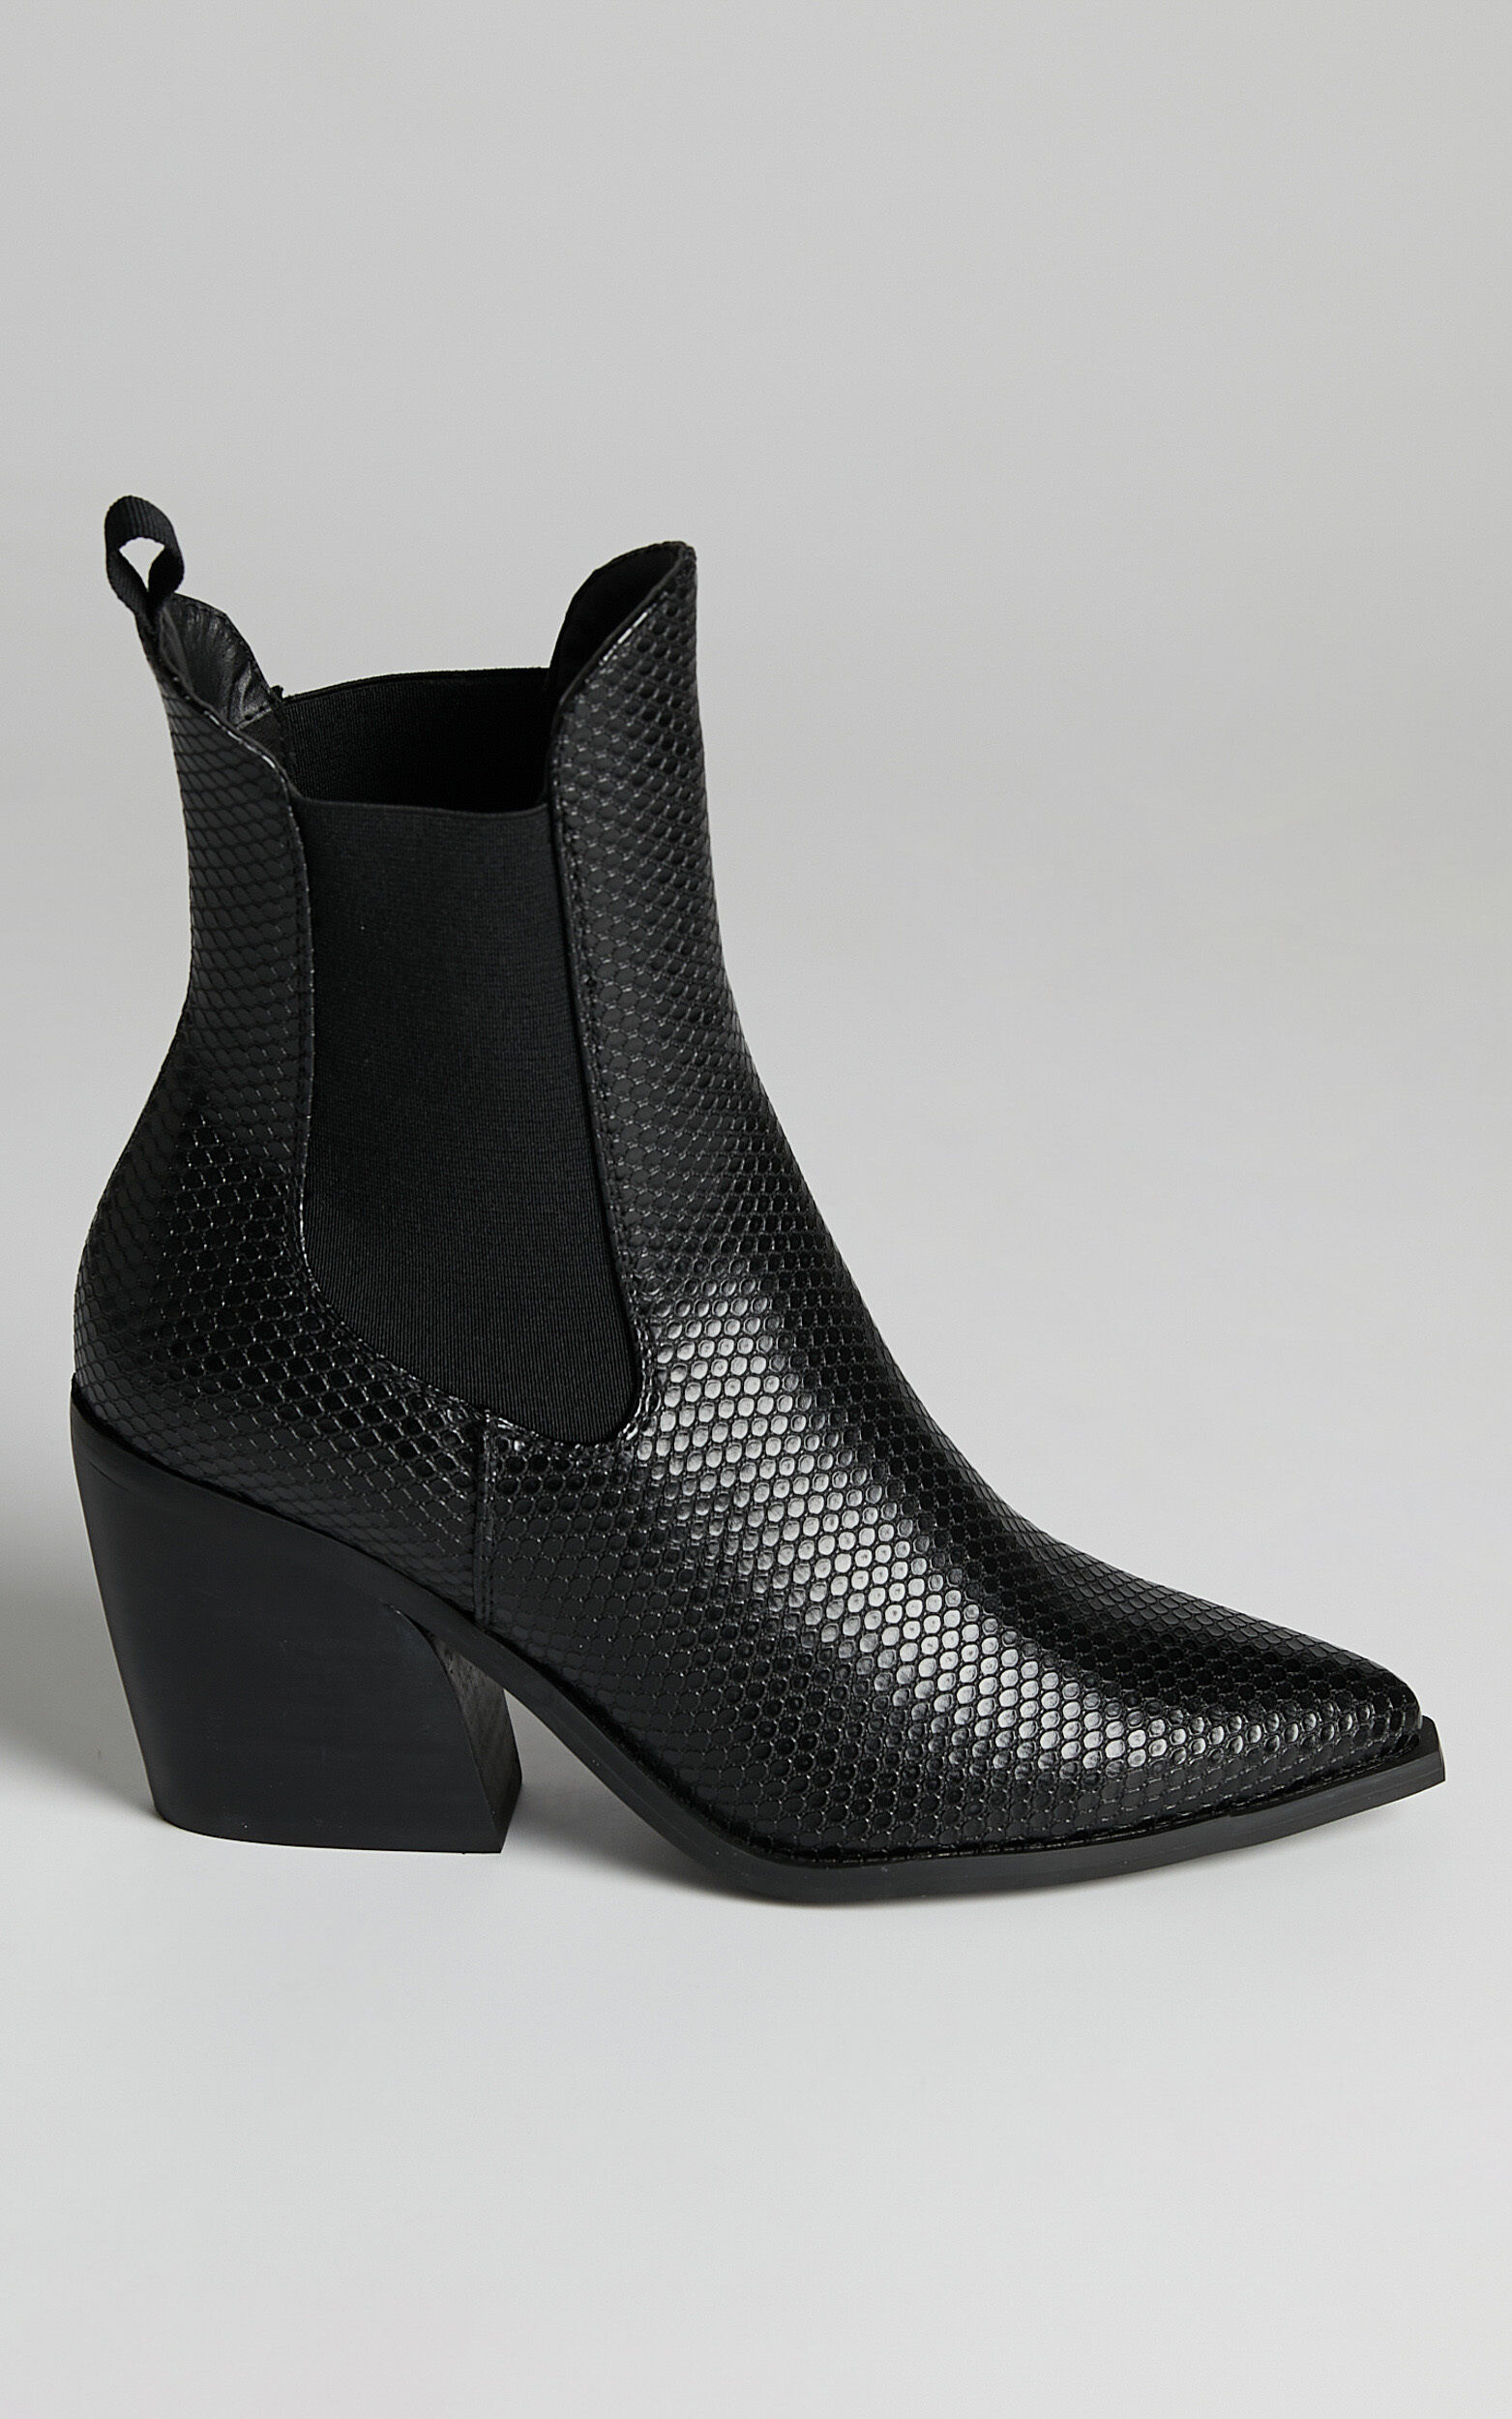 Therapy - Josette Boots in Black Snake - 05, BLK1, super-hi-res image number null